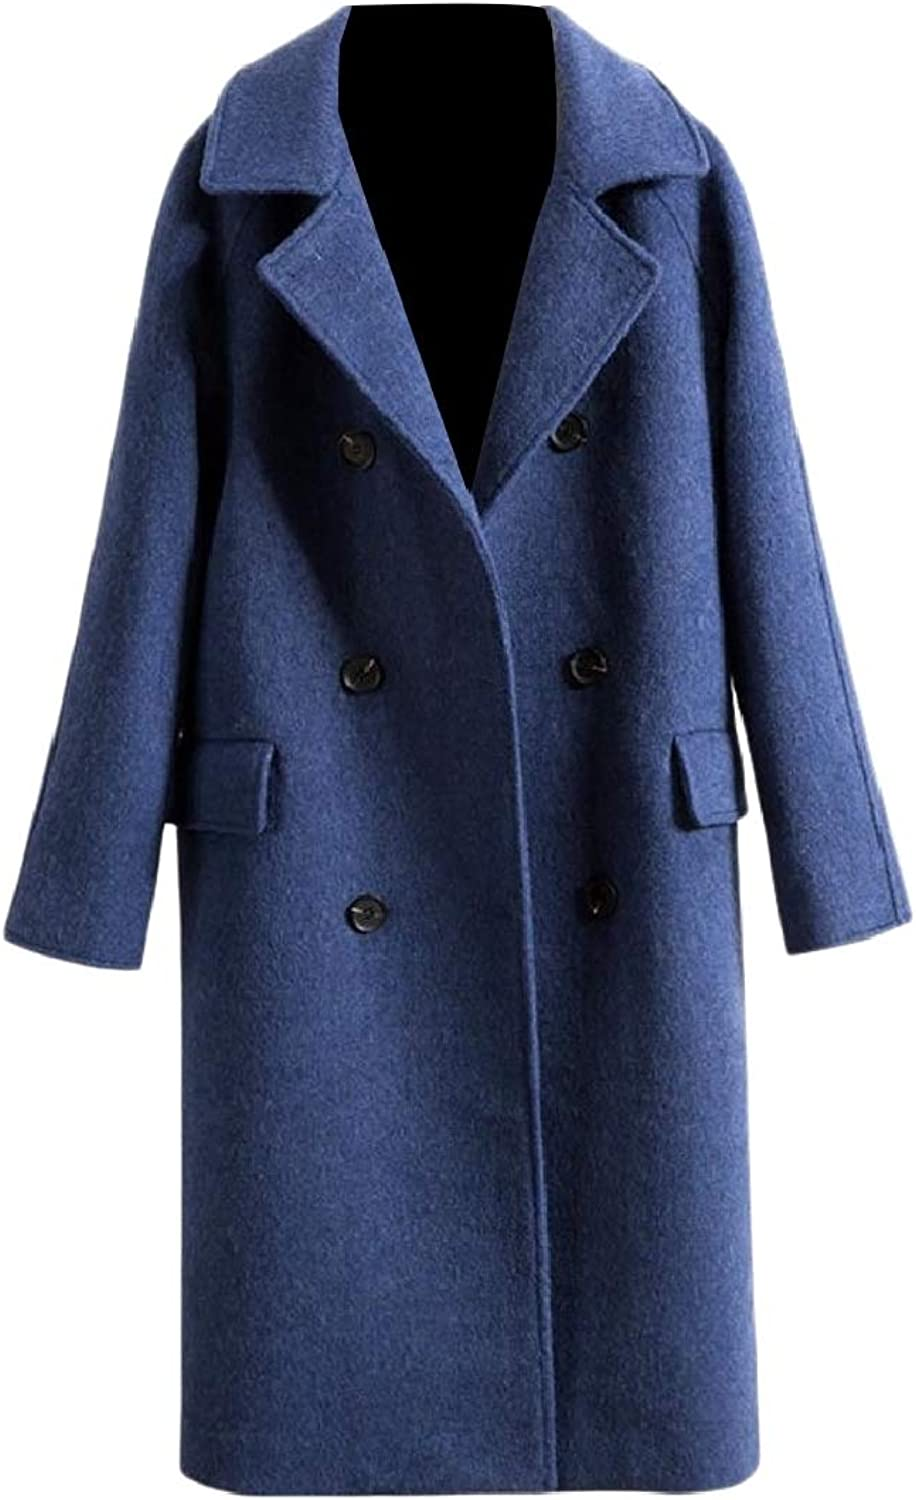 TaoNice Women Relaxed MidLong TurnDown Collar Button Casual Parka Jacket